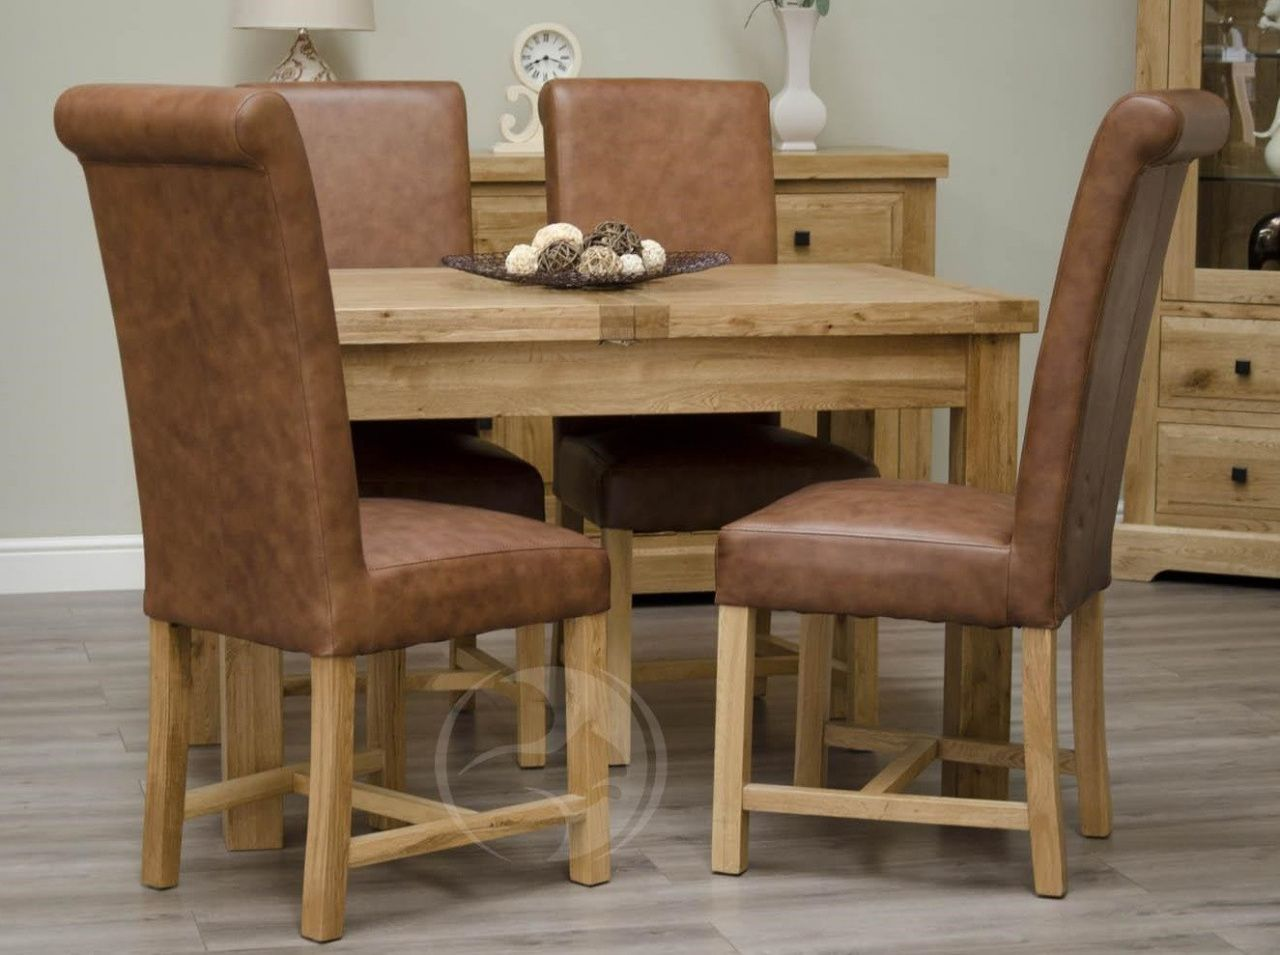 Rustic Small Dining Table Home fice Furniture Set Check more